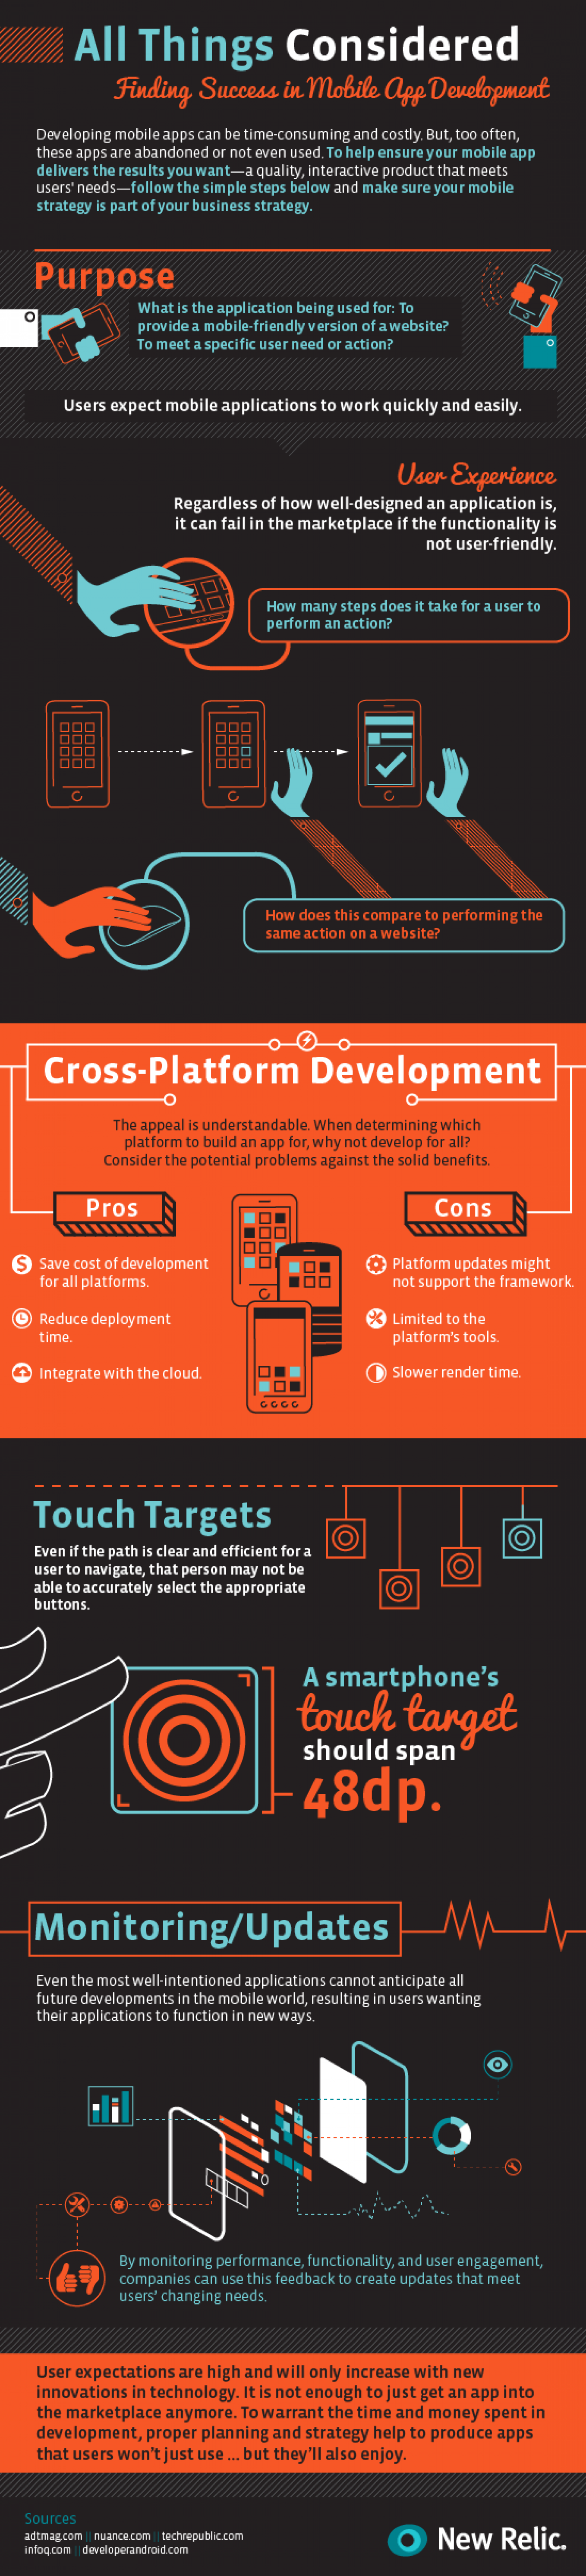 Finding Success in Mobile App Development Infographic